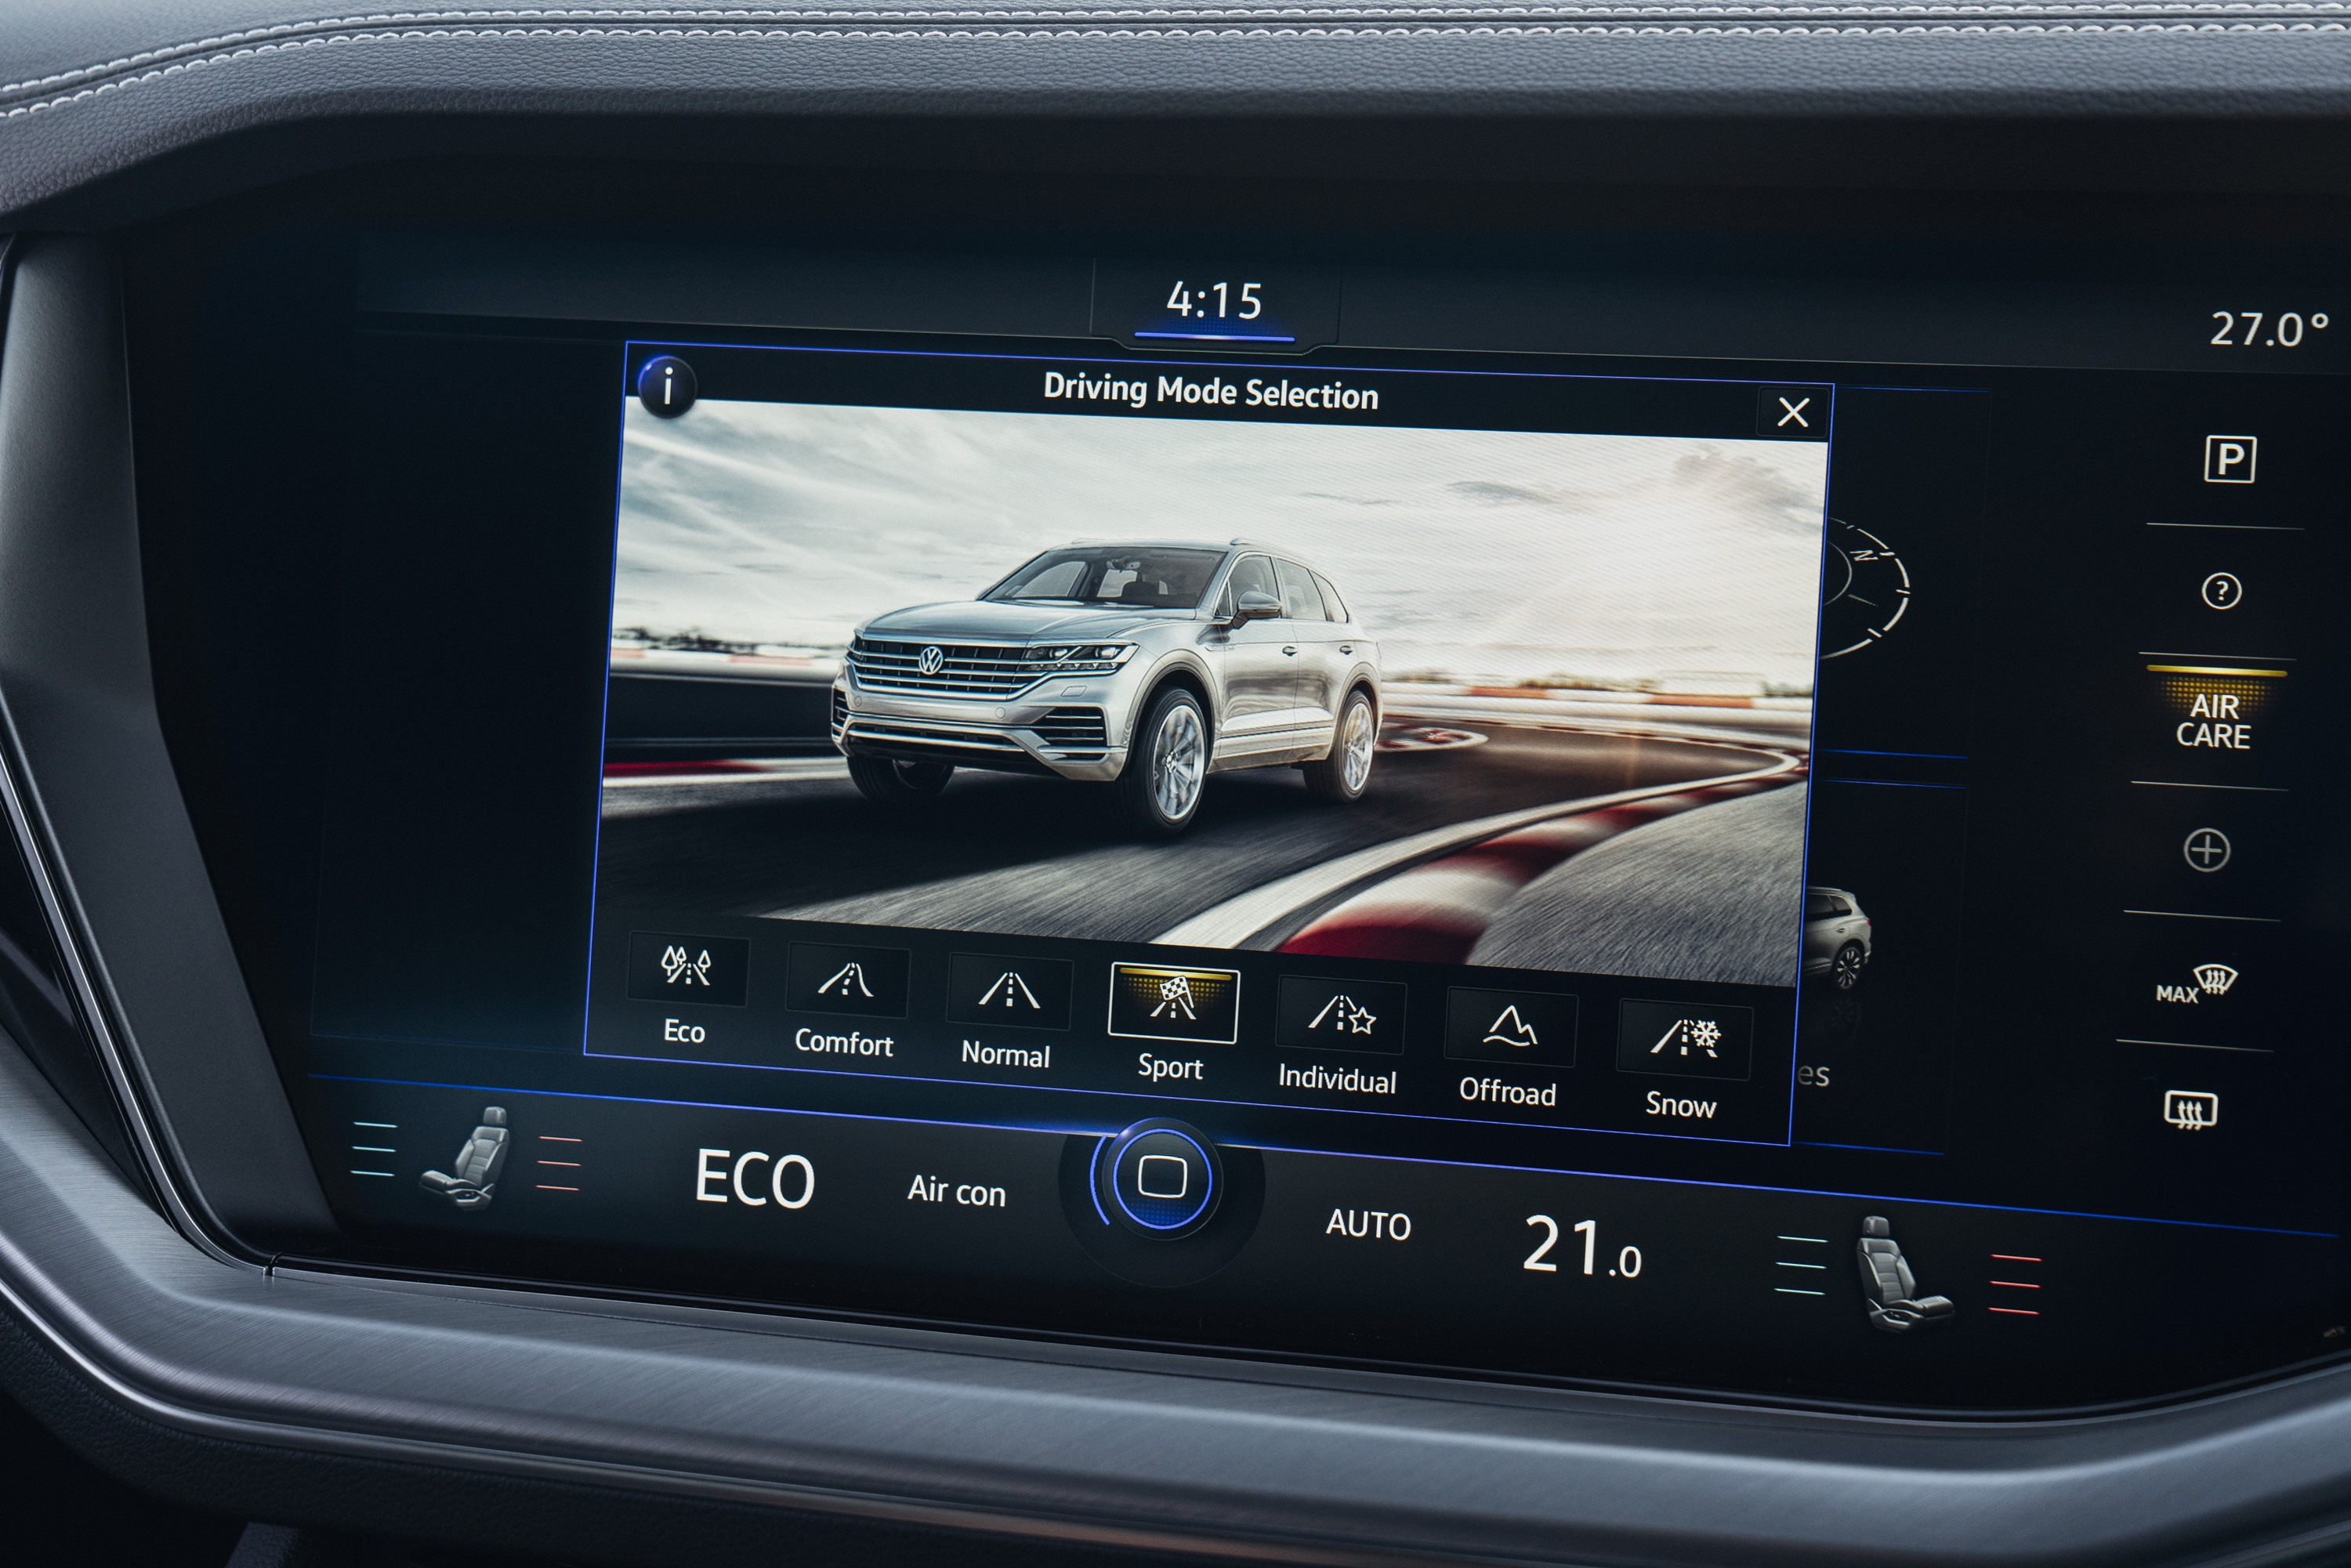 2019 VW Touareg Launch Edition 8 drive modes